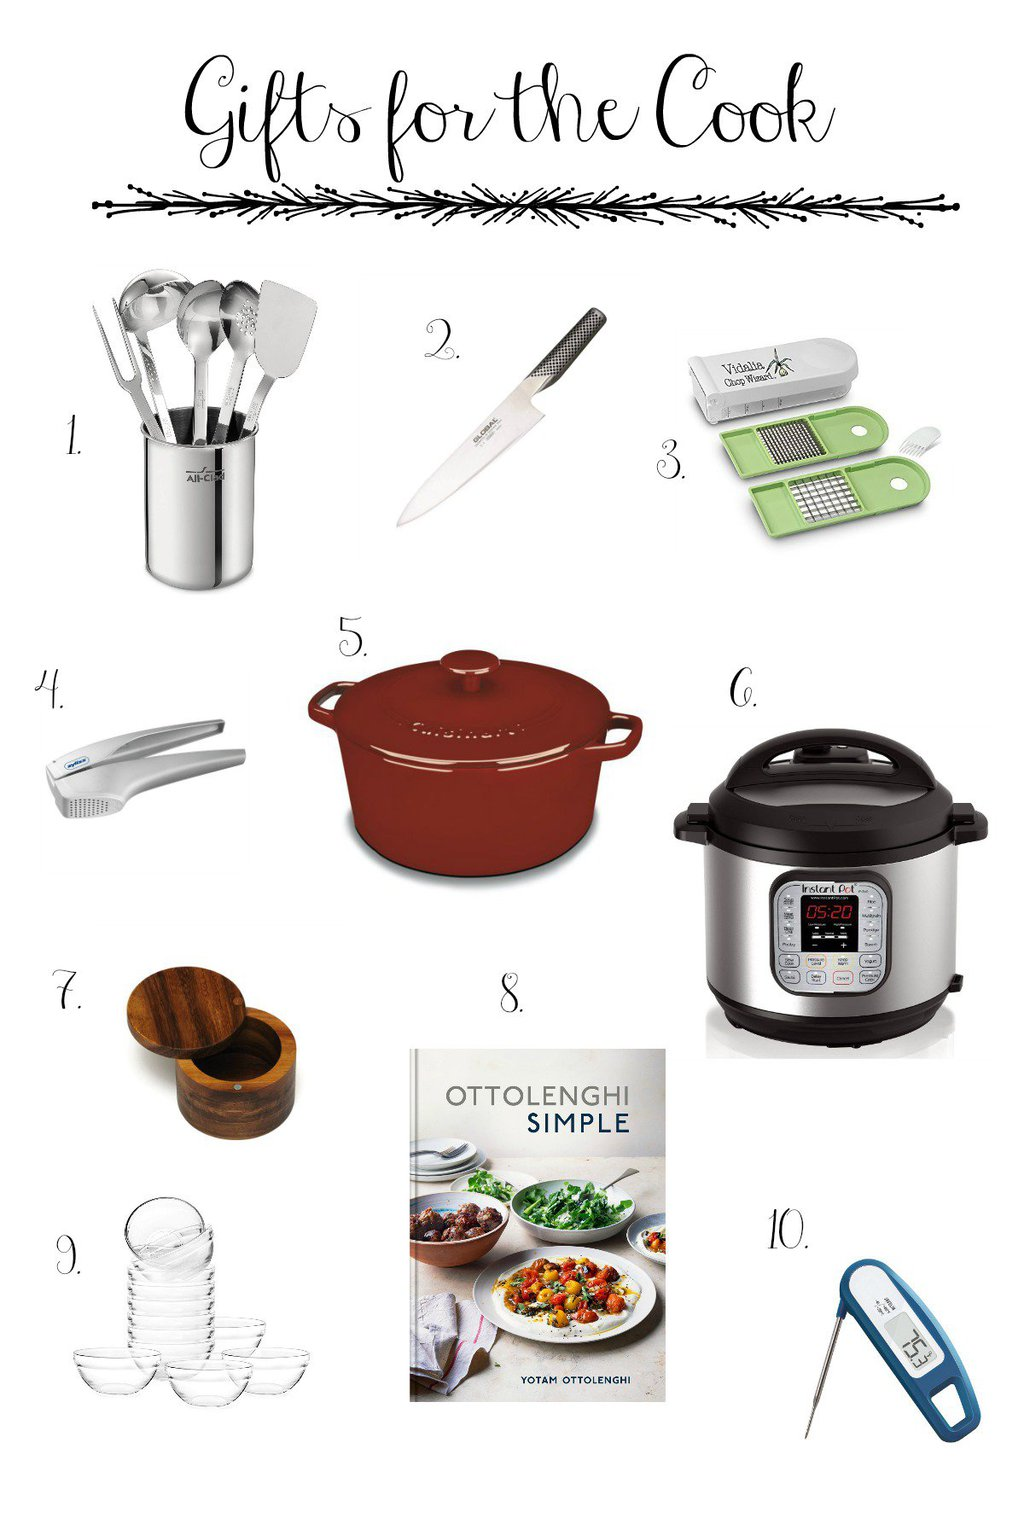 images of our gift guides for the cook